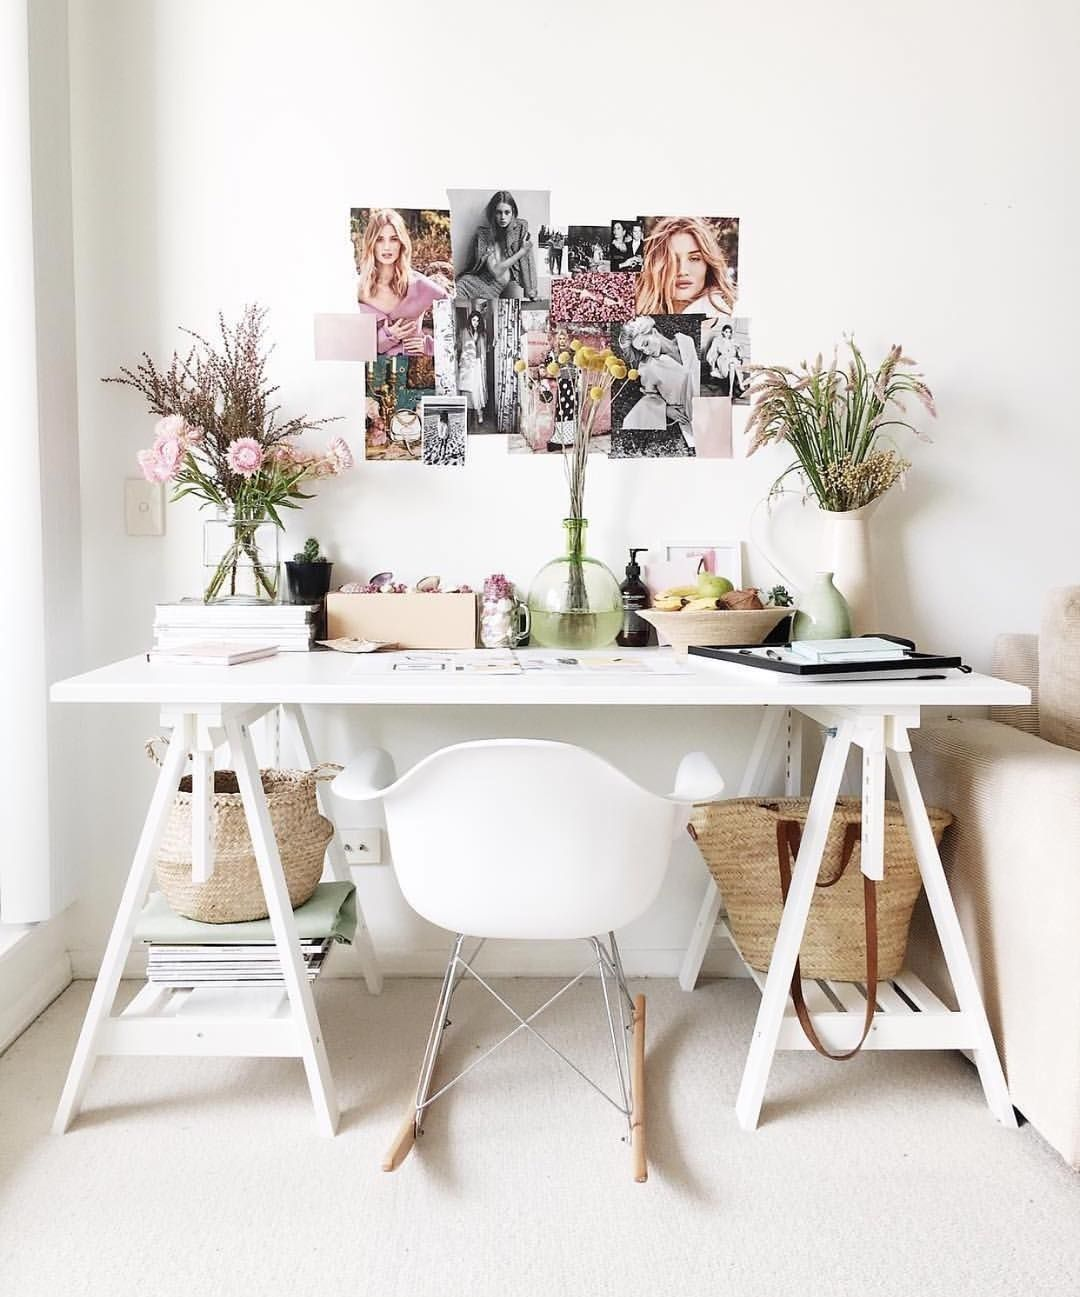 Affordable Apartment Decor: 10 Affordable Apartment Changes To Make In 2017